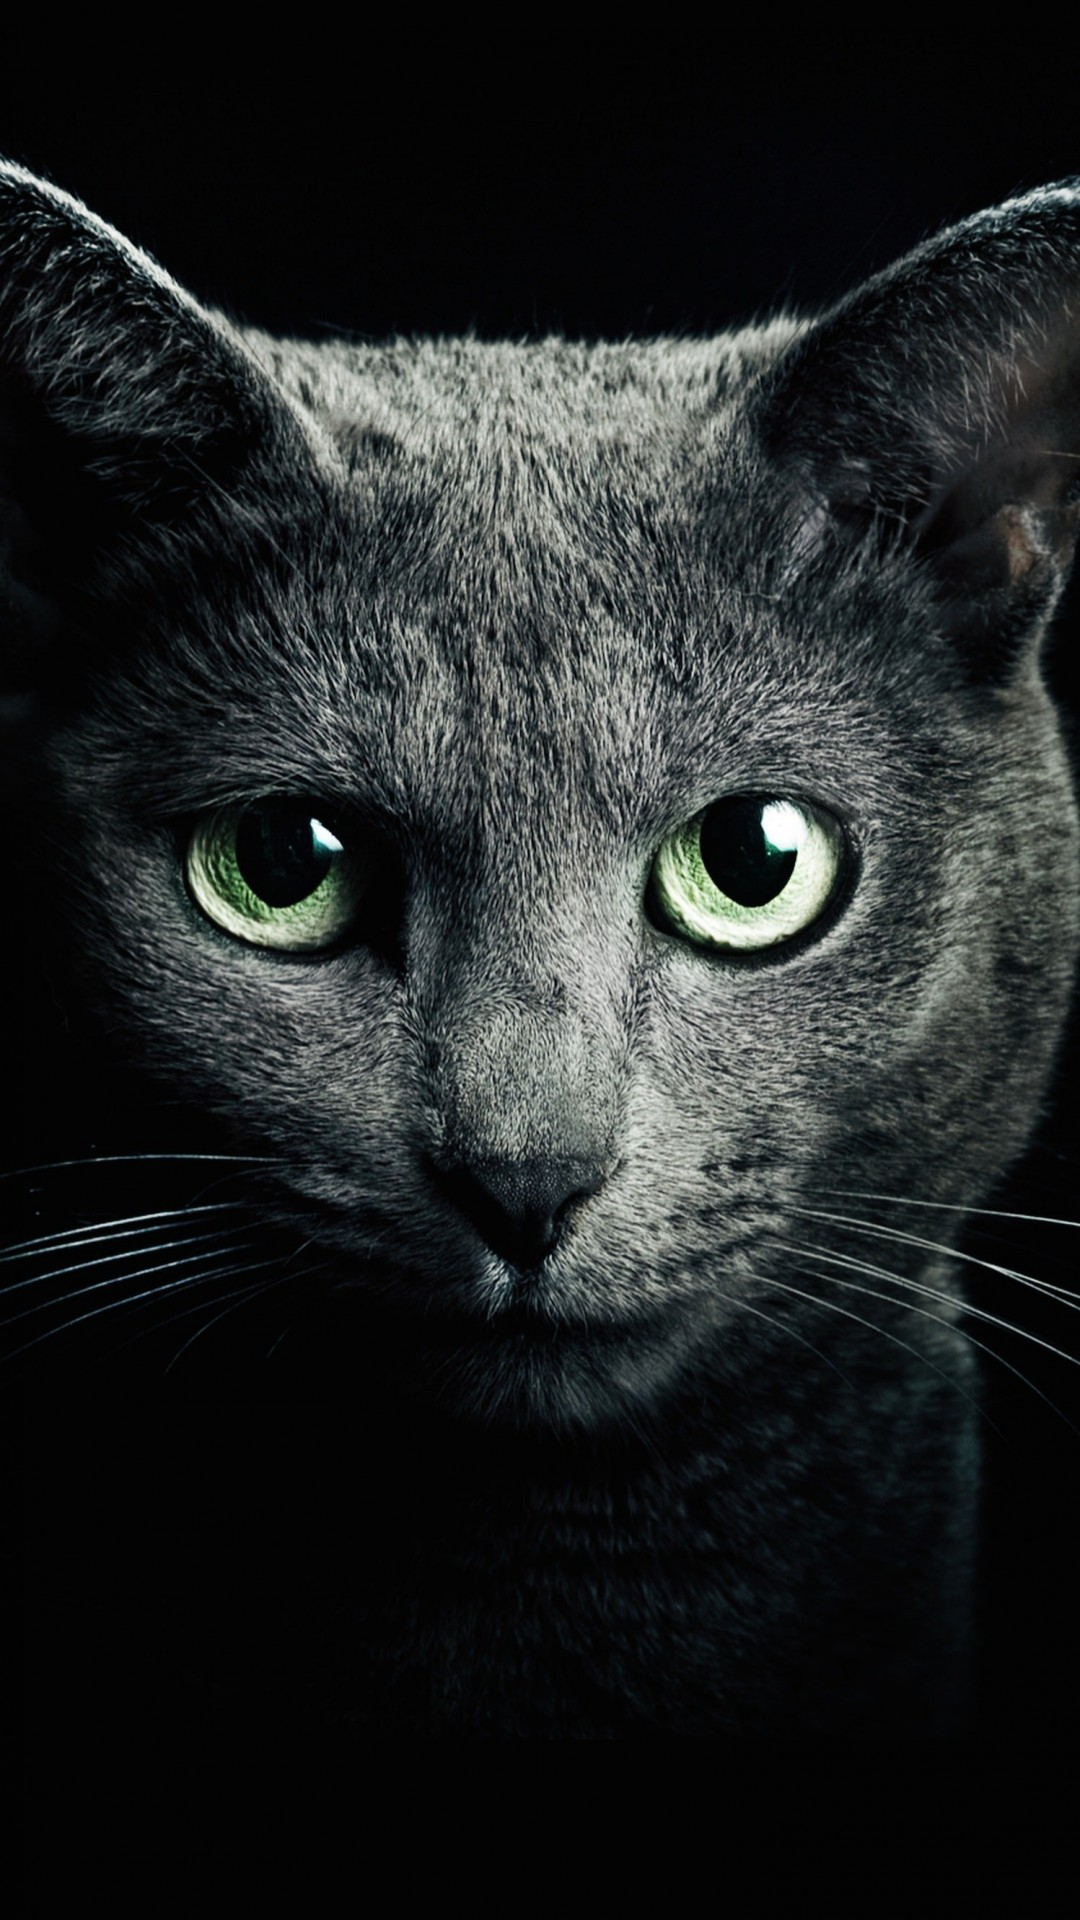 Russian Blue Cat Wallpaper for SAMSUNG Galaxy S4